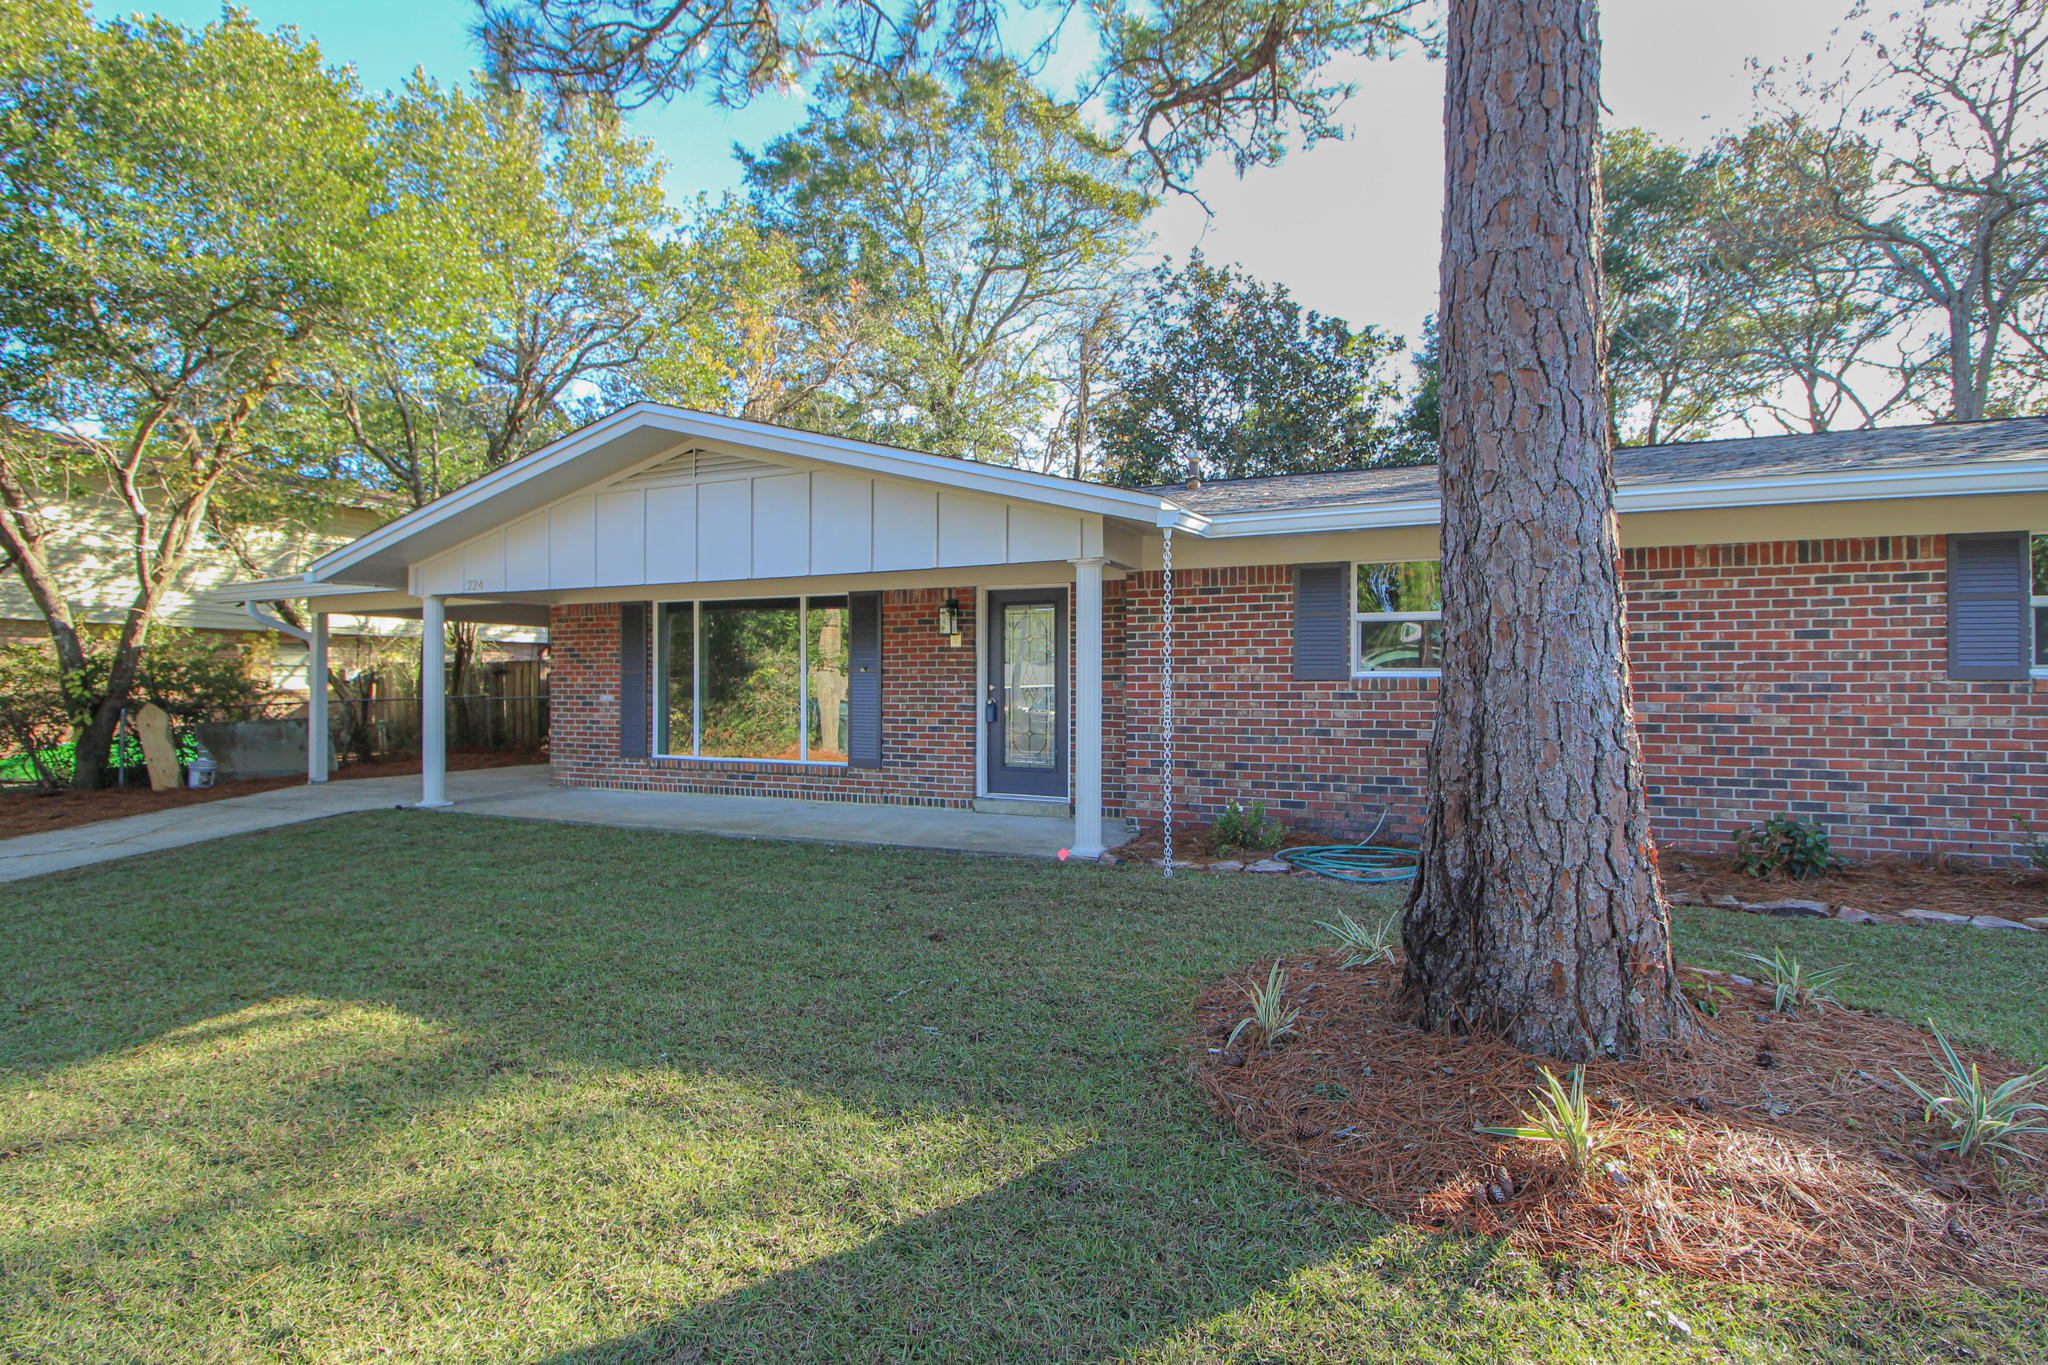 Photo of home for sale at 224 Chateaugay, Fort Walton Beach FL